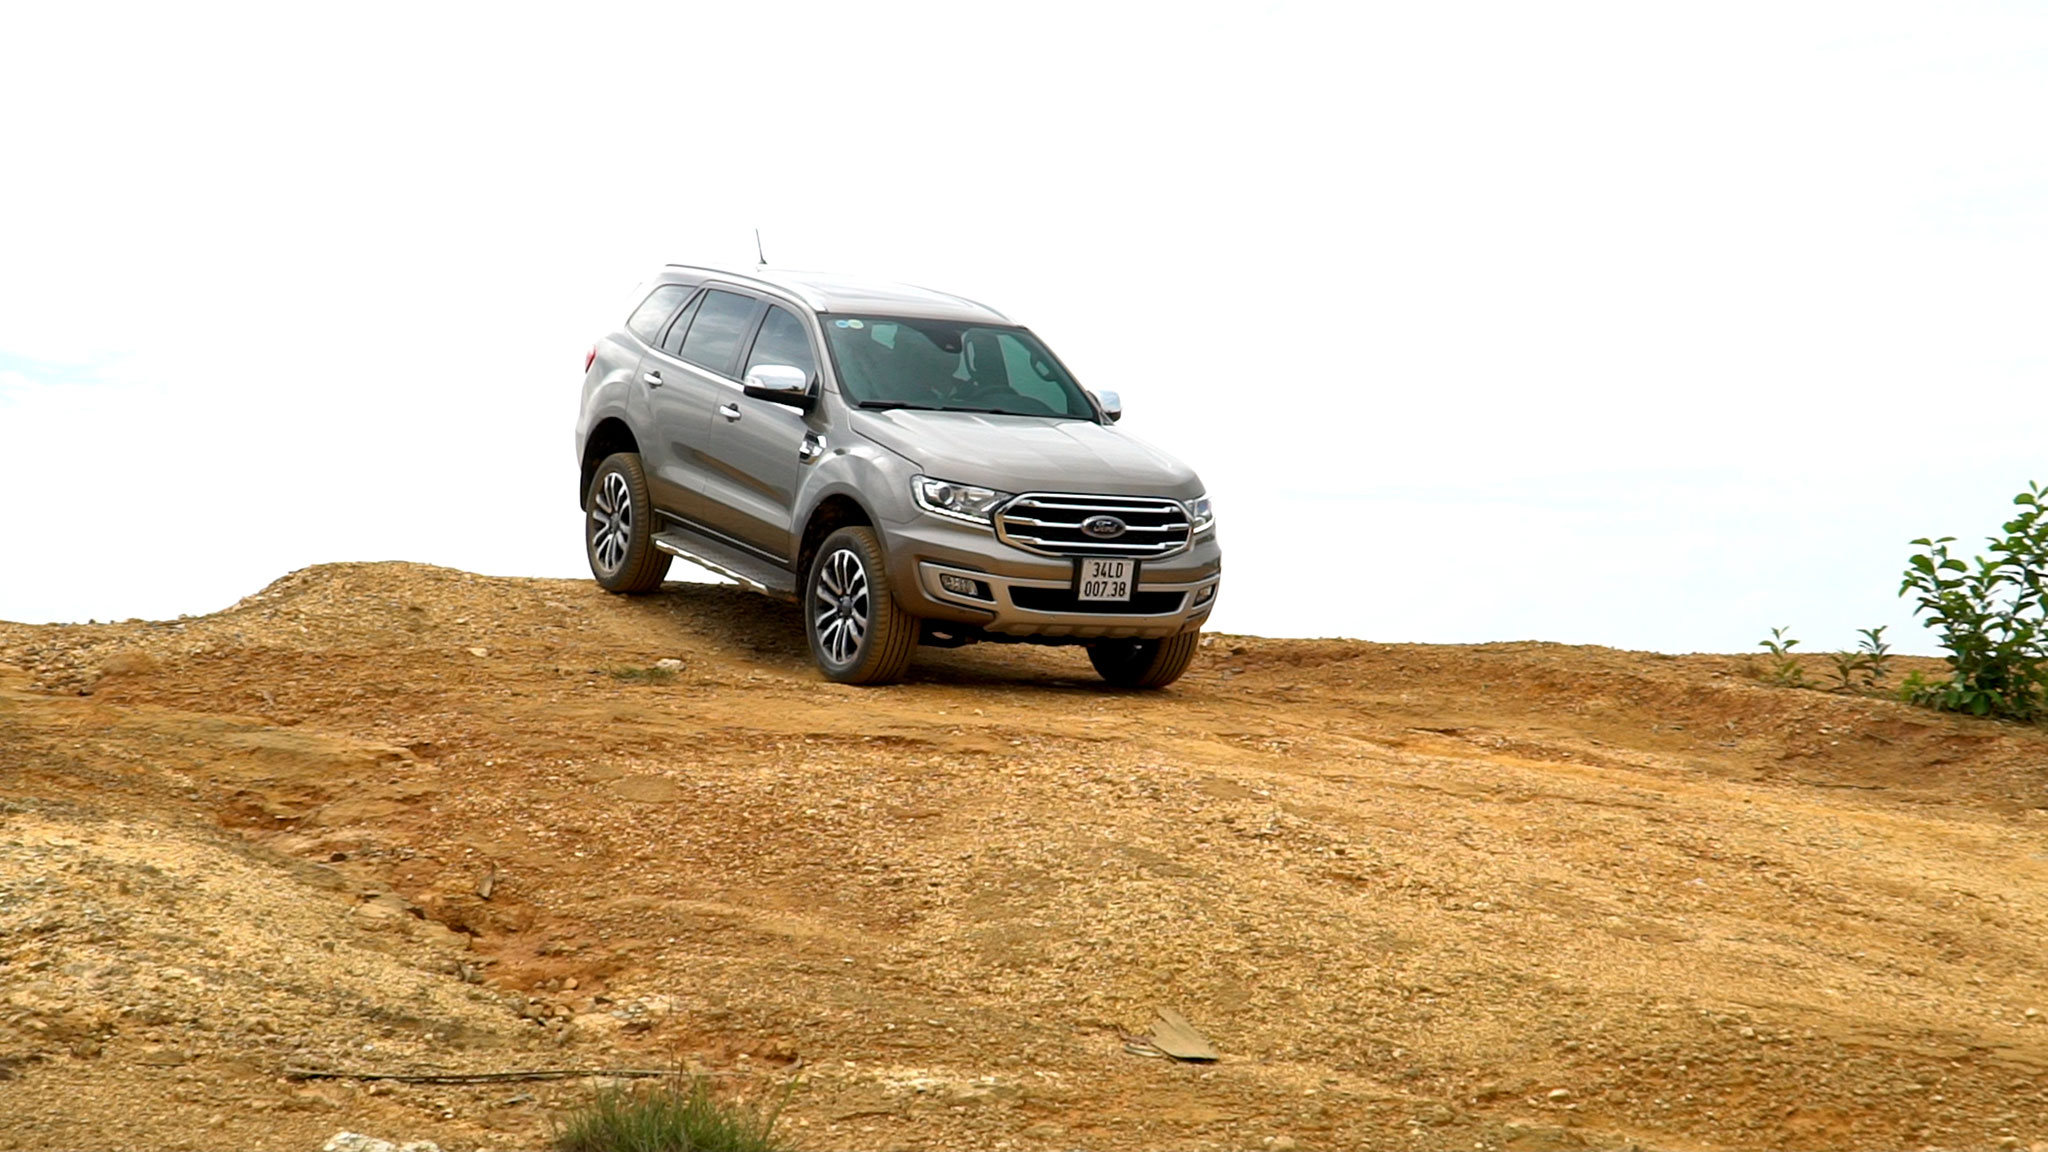 ford-everest-bi-turbo-autodaily-019.jpg